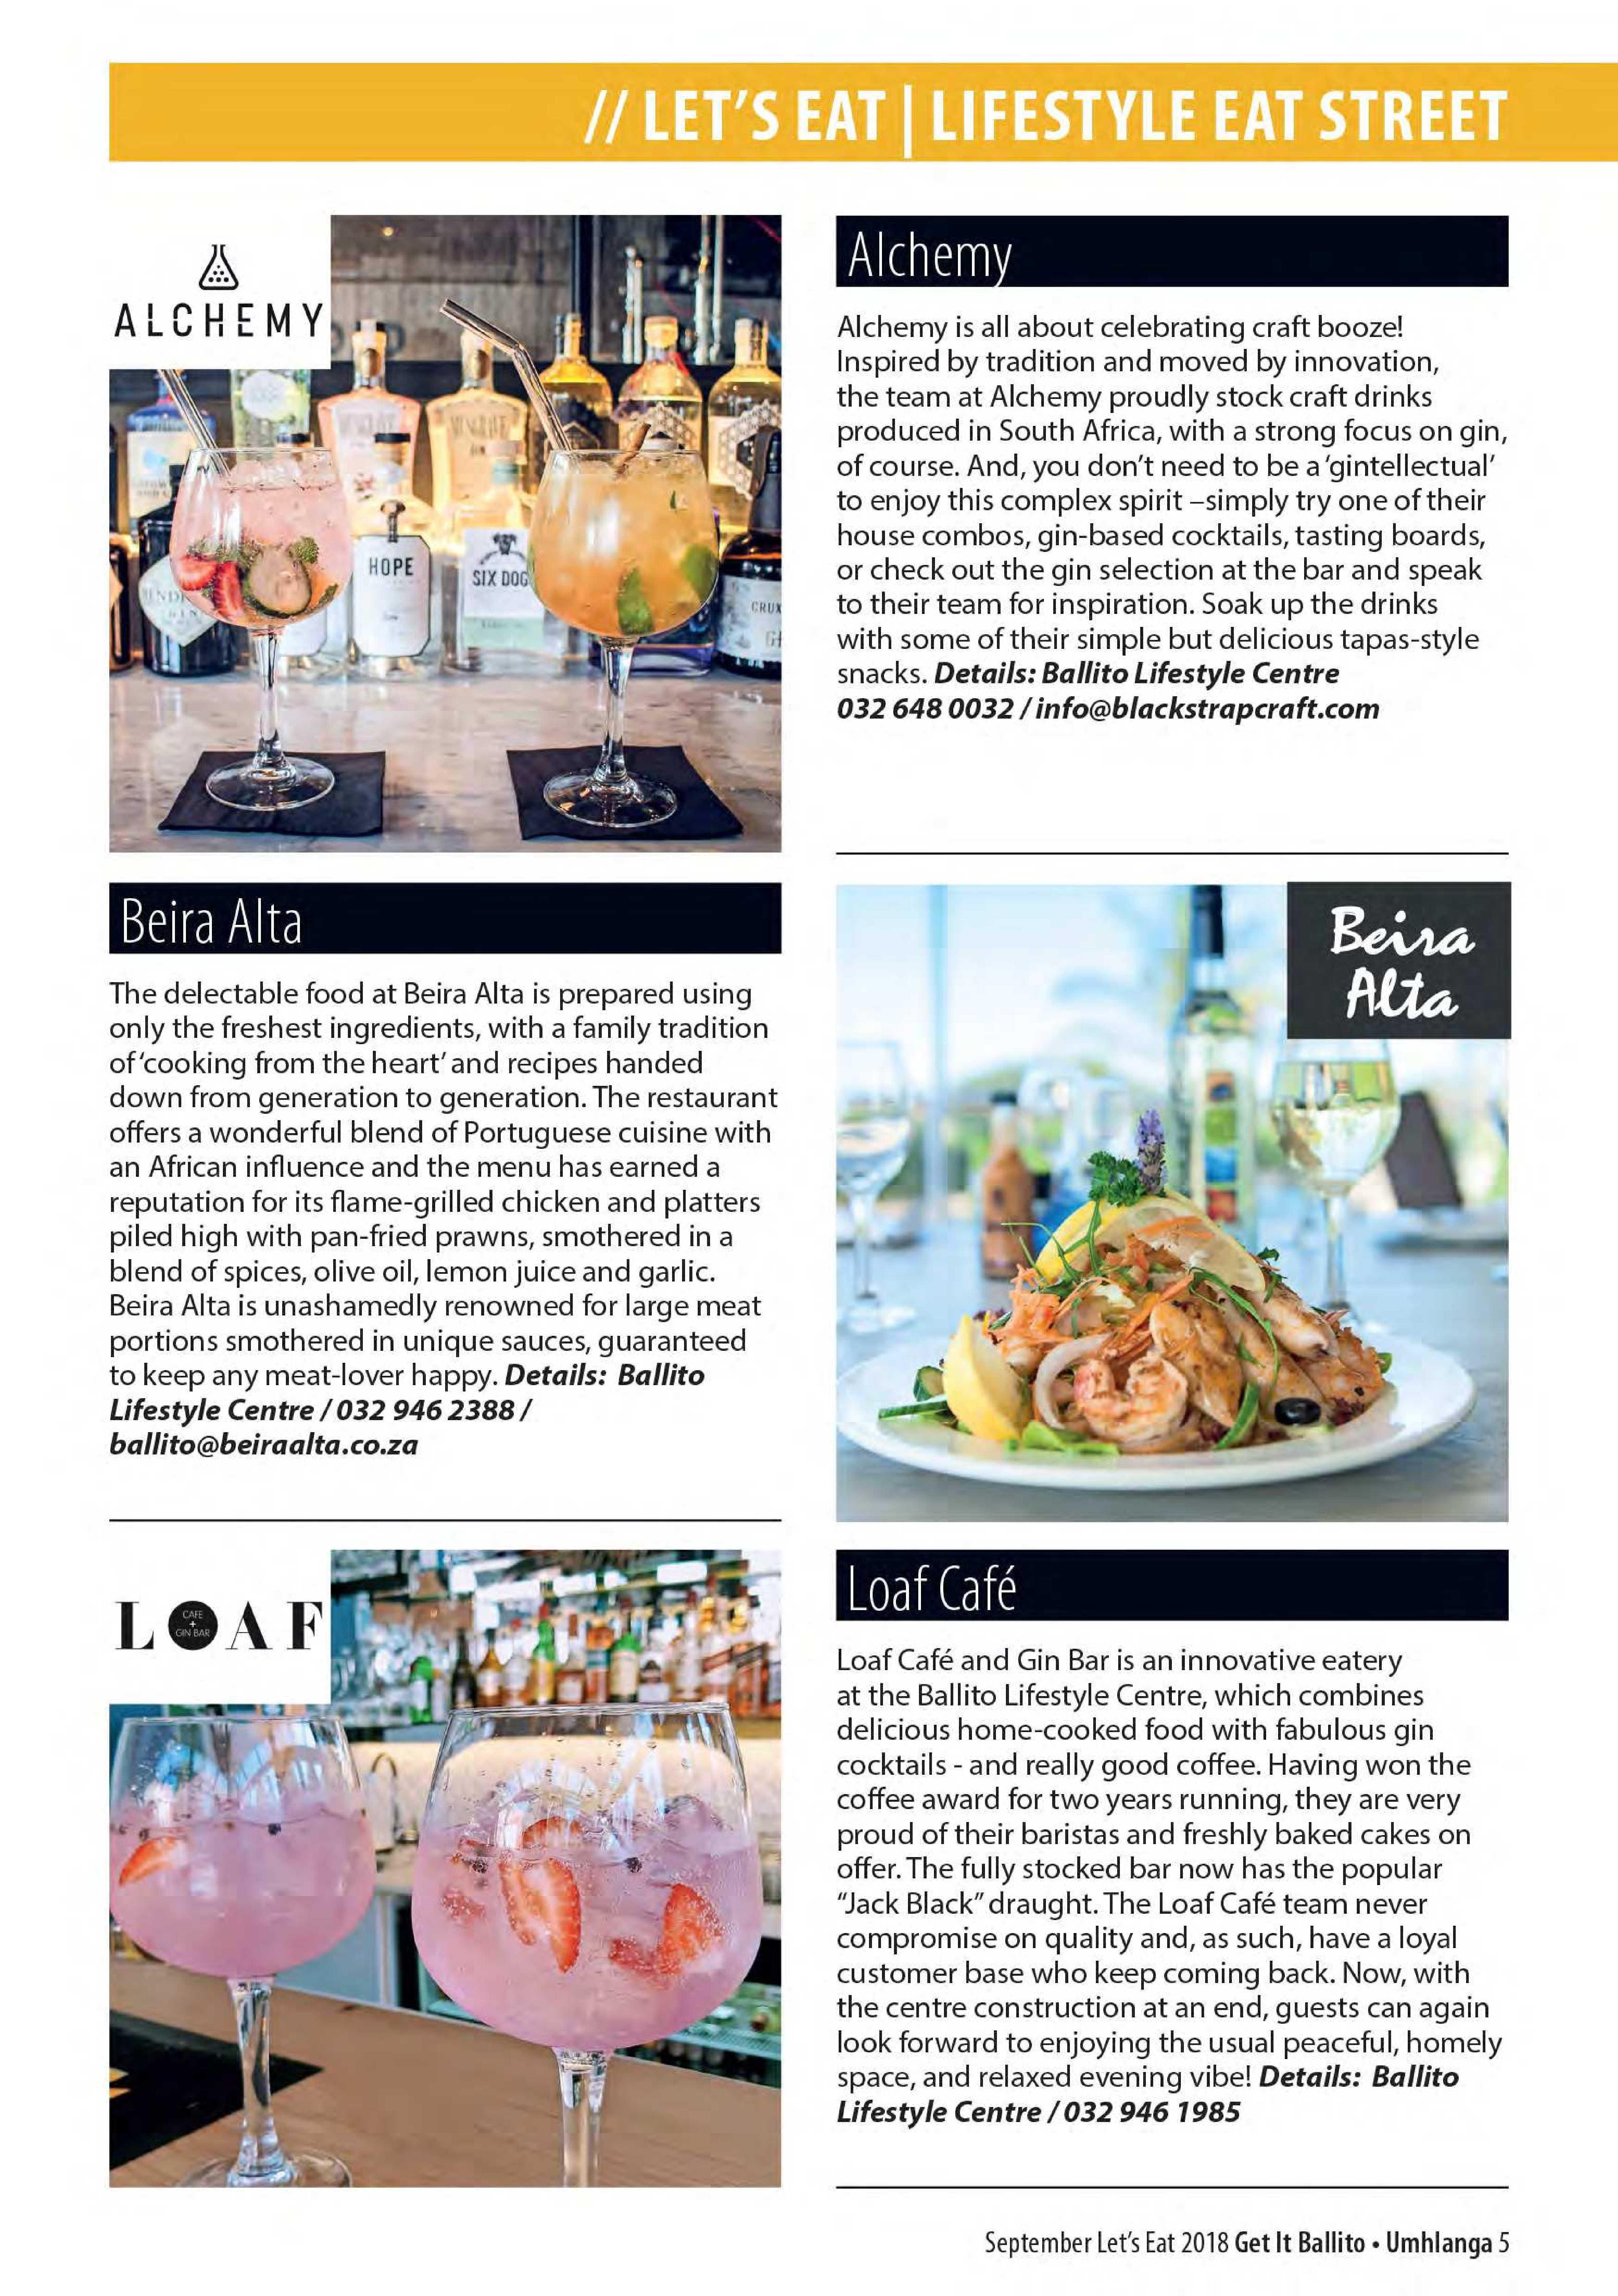 lets-eat-epapers-page-7